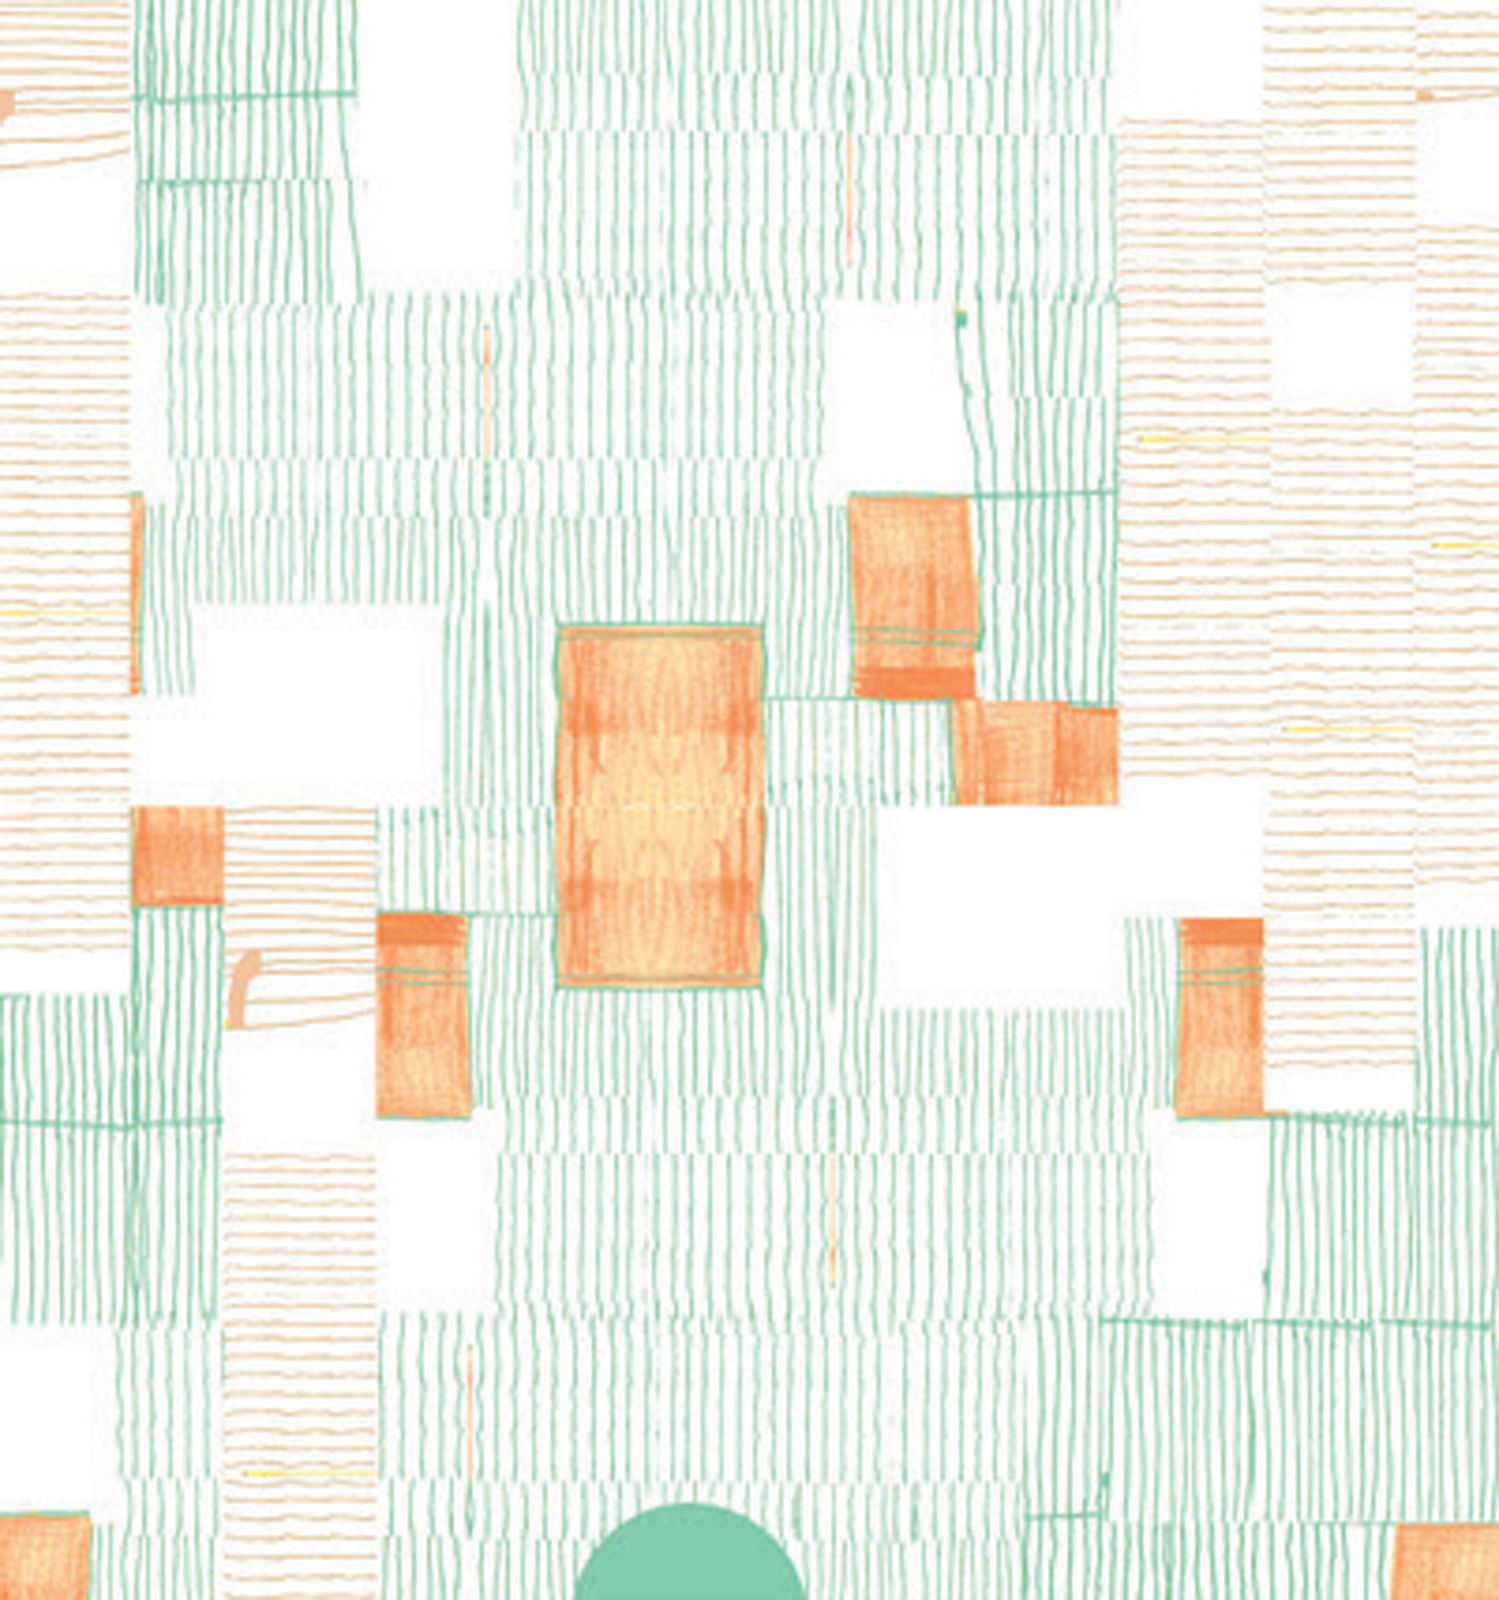 Mint Blanket Wallpaper by Renée Rossouw